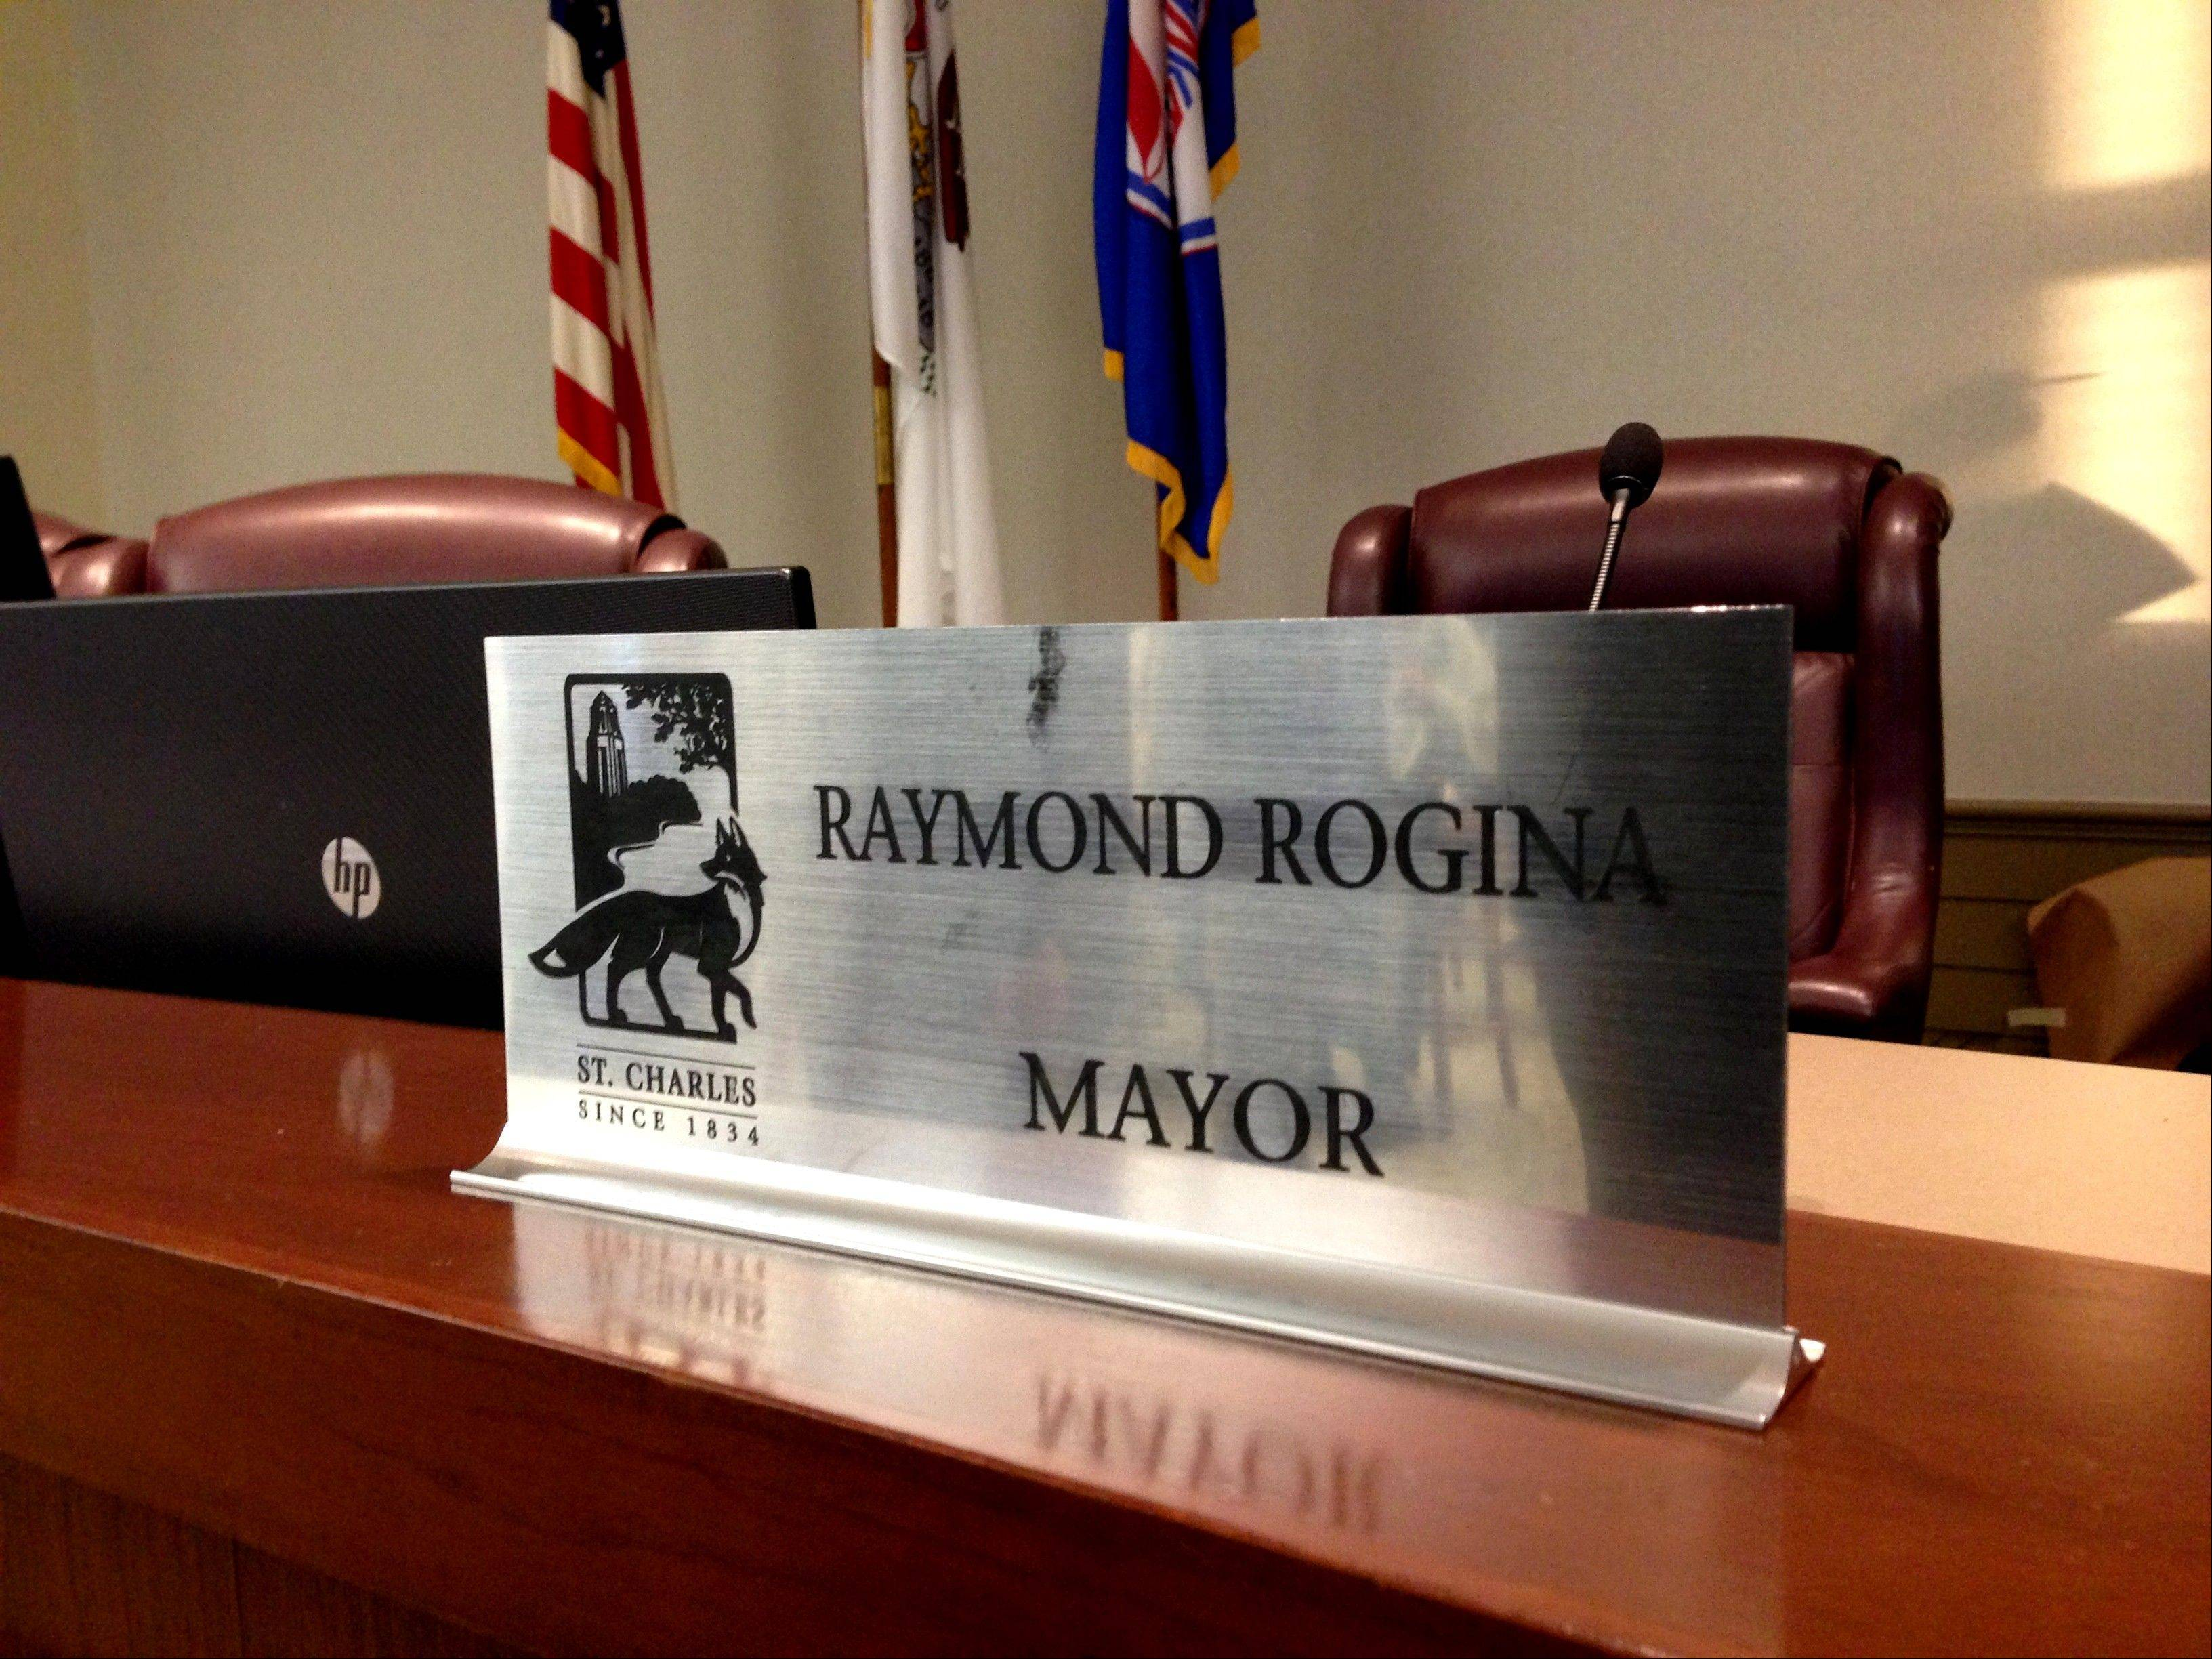 Ray Rogina took his seat as the new mayor of St. Charles on Monday night.